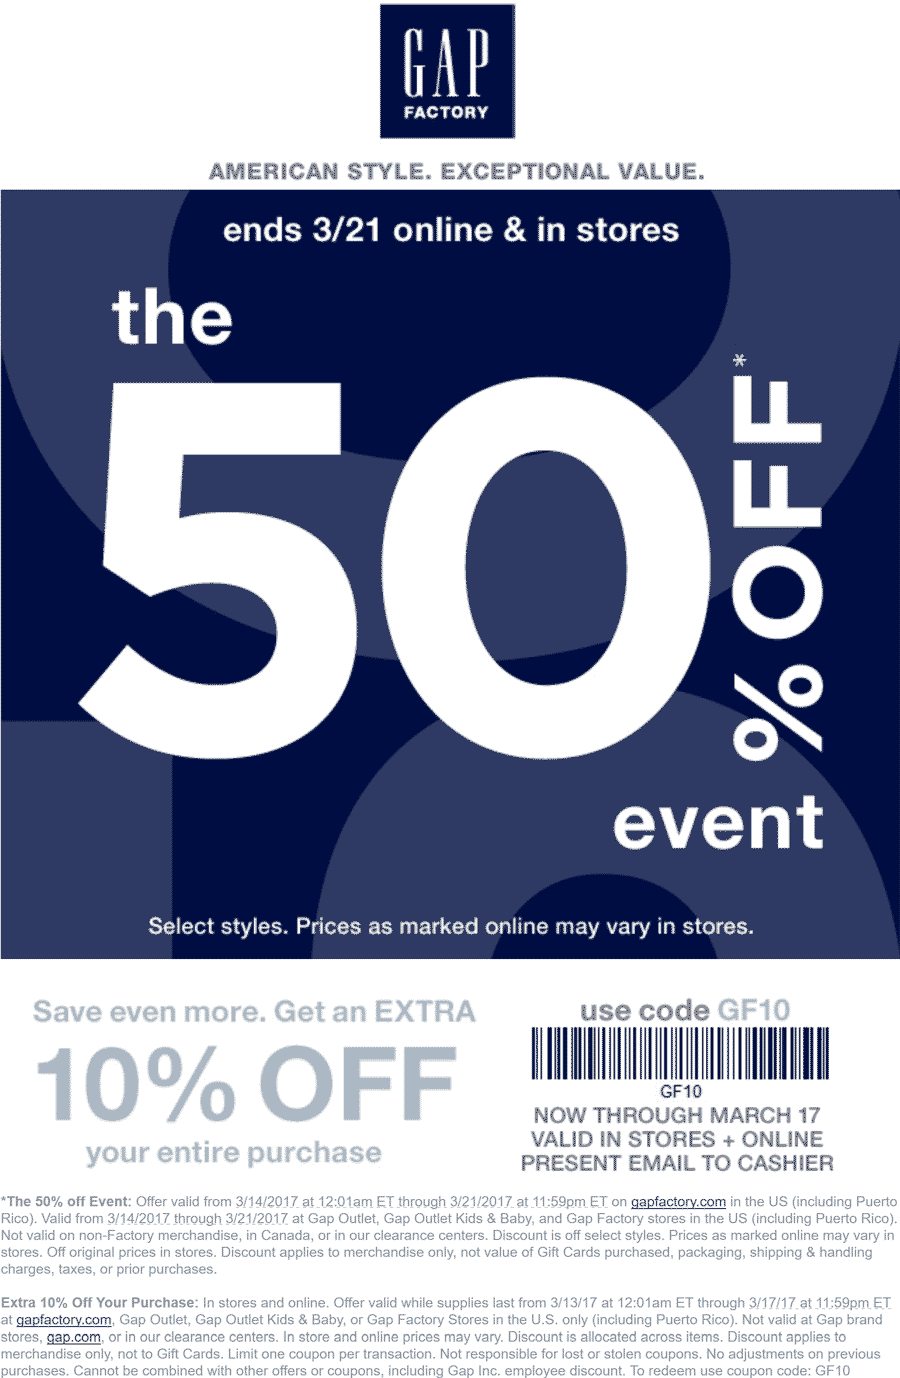 Gap Factory Outlet Coupon Online Shopping Has Never Been As Easy